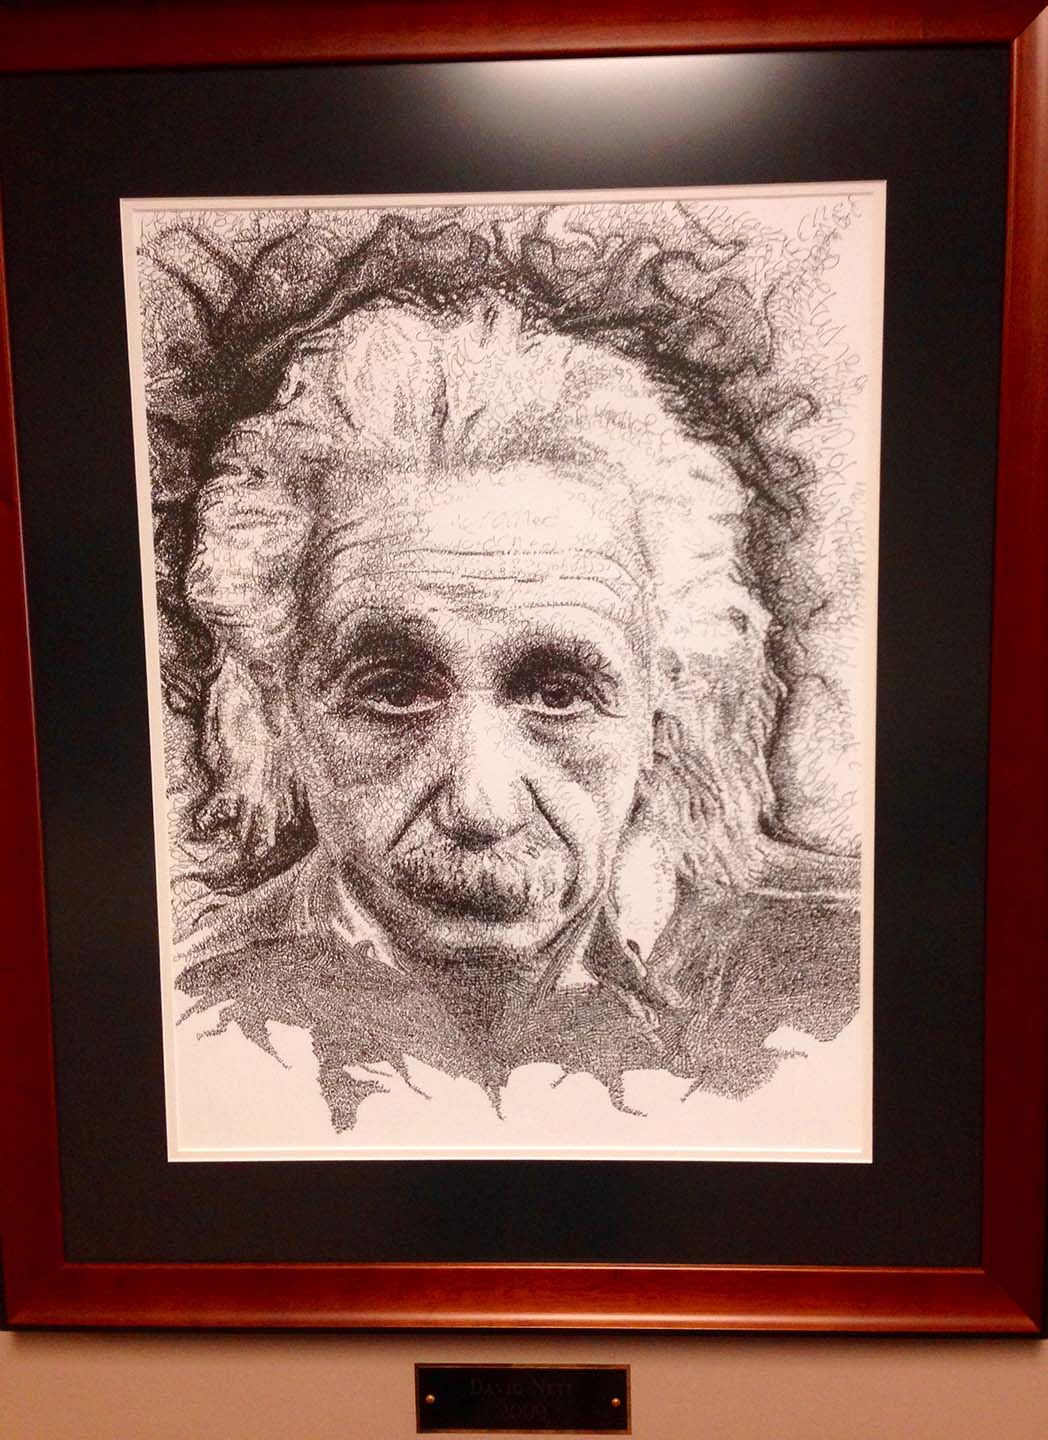 Artwork Albert Einstein Pencil Sketch